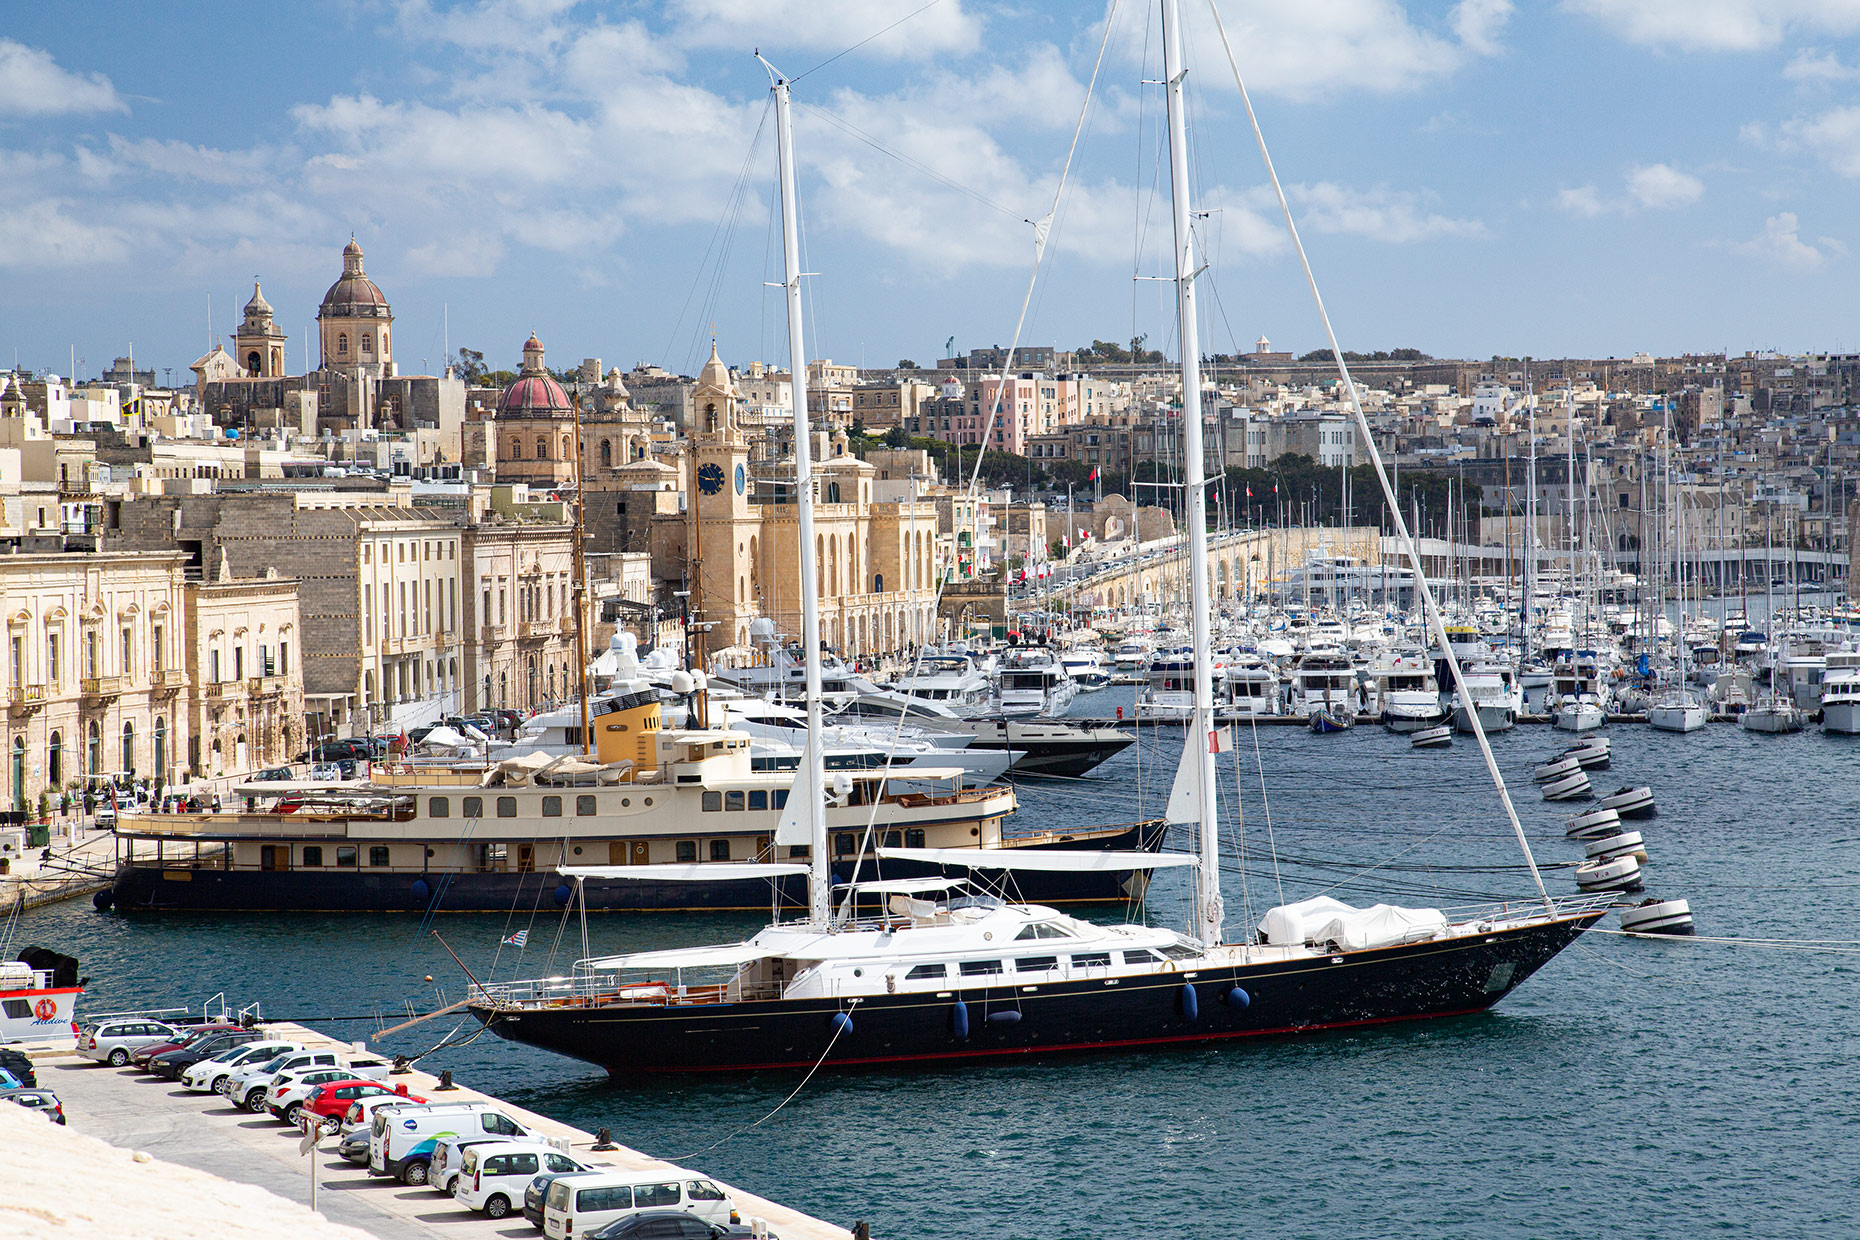 Grand-Harbor-Valetta-Malta-Yachting-Boat-Photography-Caryn-B-Davis